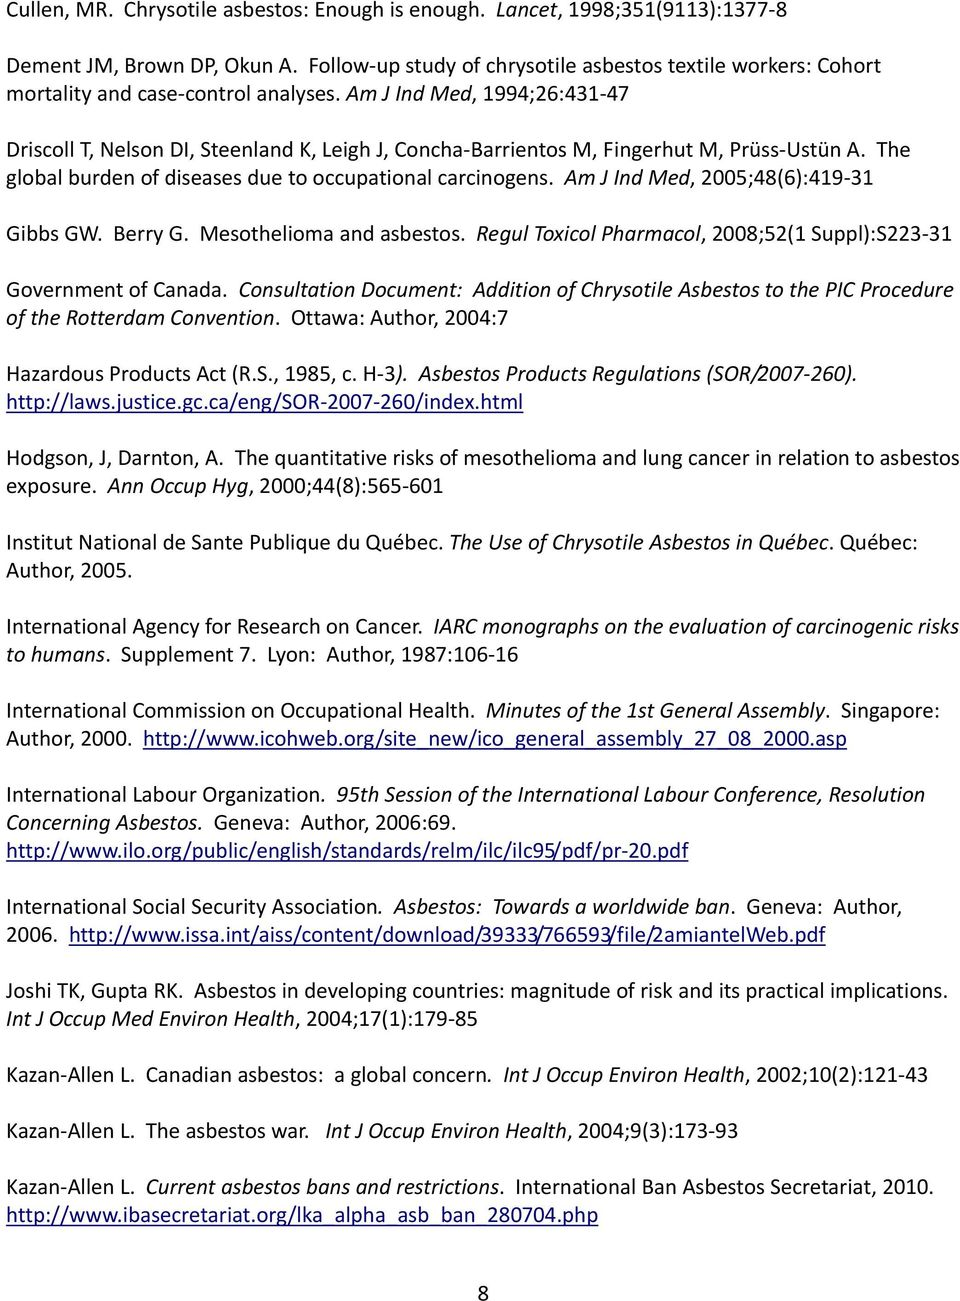 Am J Ind Med, 1994;26:431 47 Driscoll T, Nelson DI, Steenland K, Leigh J, Concha Barrientos M, Fingerhut M, Prüss Ustün A. The global burden of diseases due to occupational carcinogens.